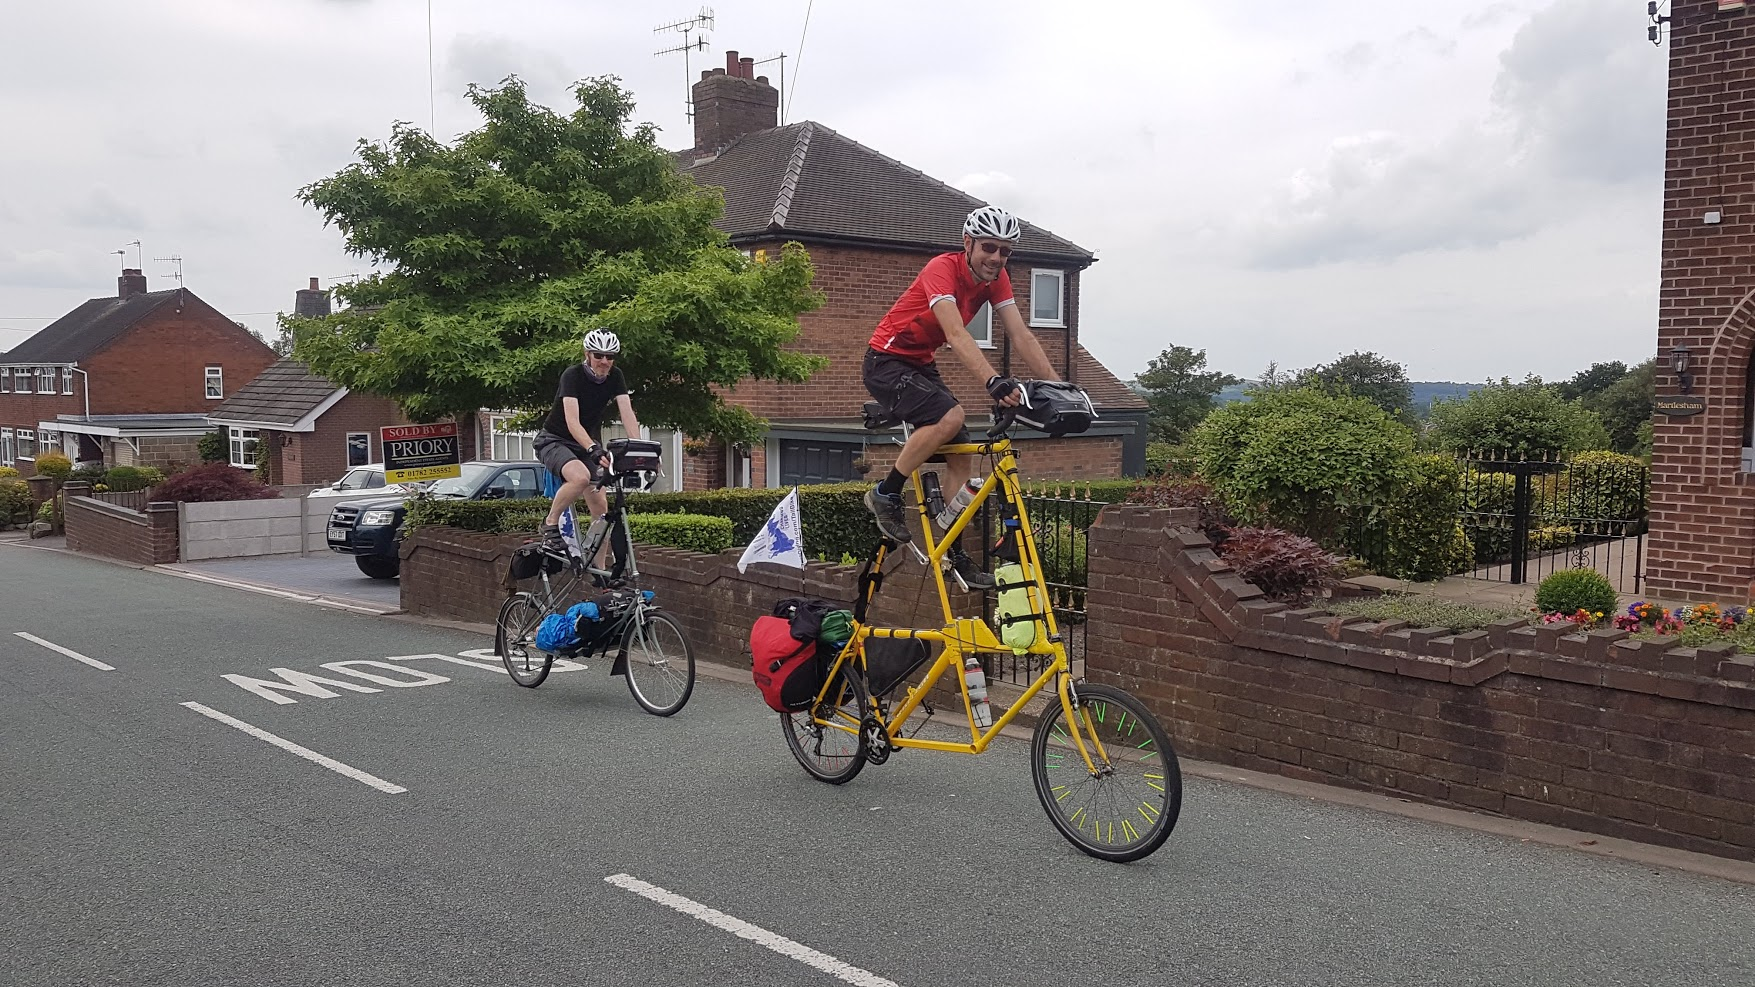 Seen at mile 22, these guys were doing LEJOG. They had built each bike by welding three frames together. Now I have seen everything.